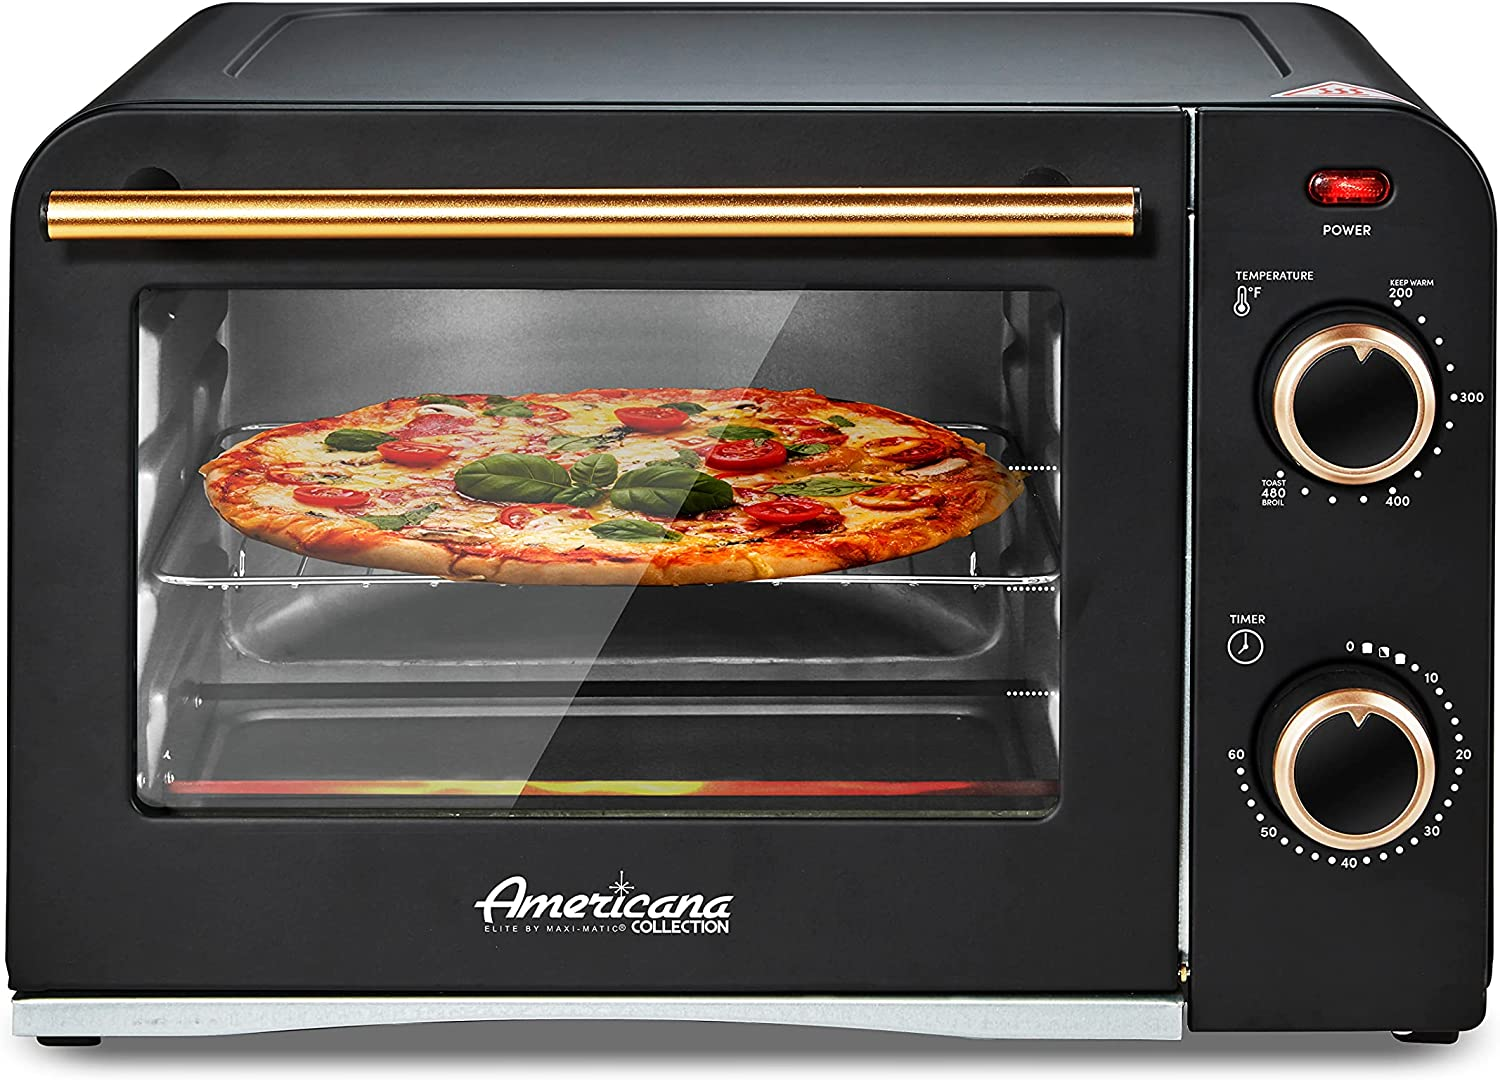 """Elite Gourmet Americana Fits 9"""" Pizza, Vintage Diner 50's Retro Countertop Toaster oven Bake, Broil, Toast, Temperature Control & Adjustable 60-Minute Timer, Glass Door Printed Wrong, Black, 4 Slice"""